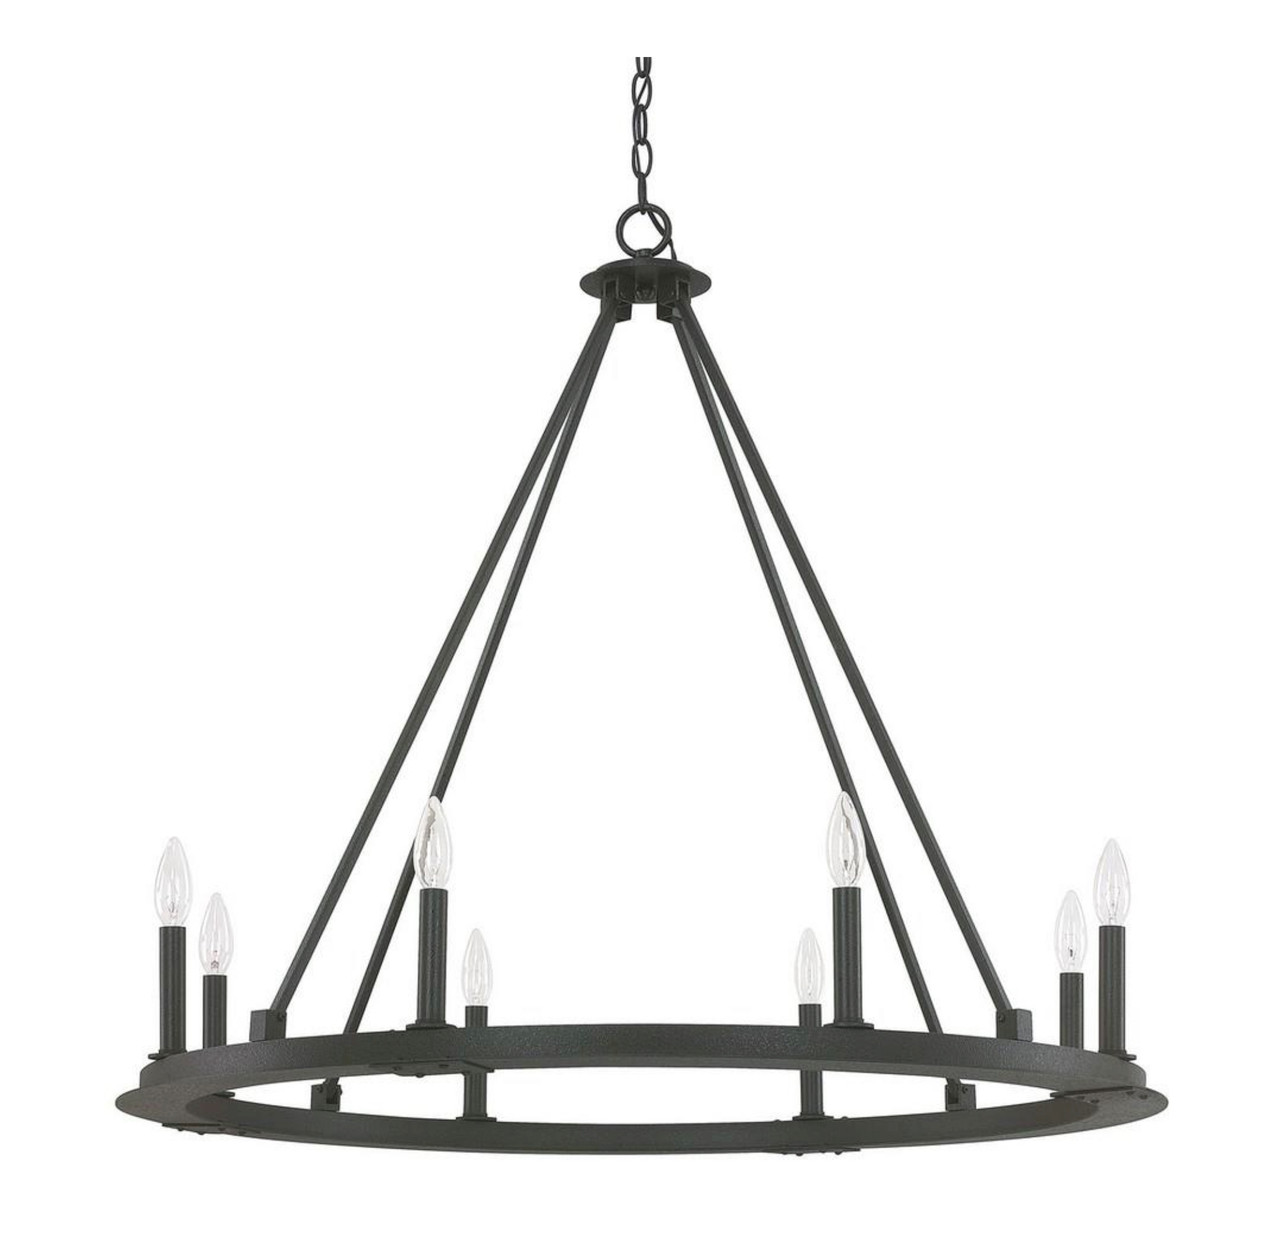 "Pearson 36"" Eight Light Chandelier by Capital Lighting, 120V, 480W, Dimmable, UL Listed Dry (4918BI-000)"